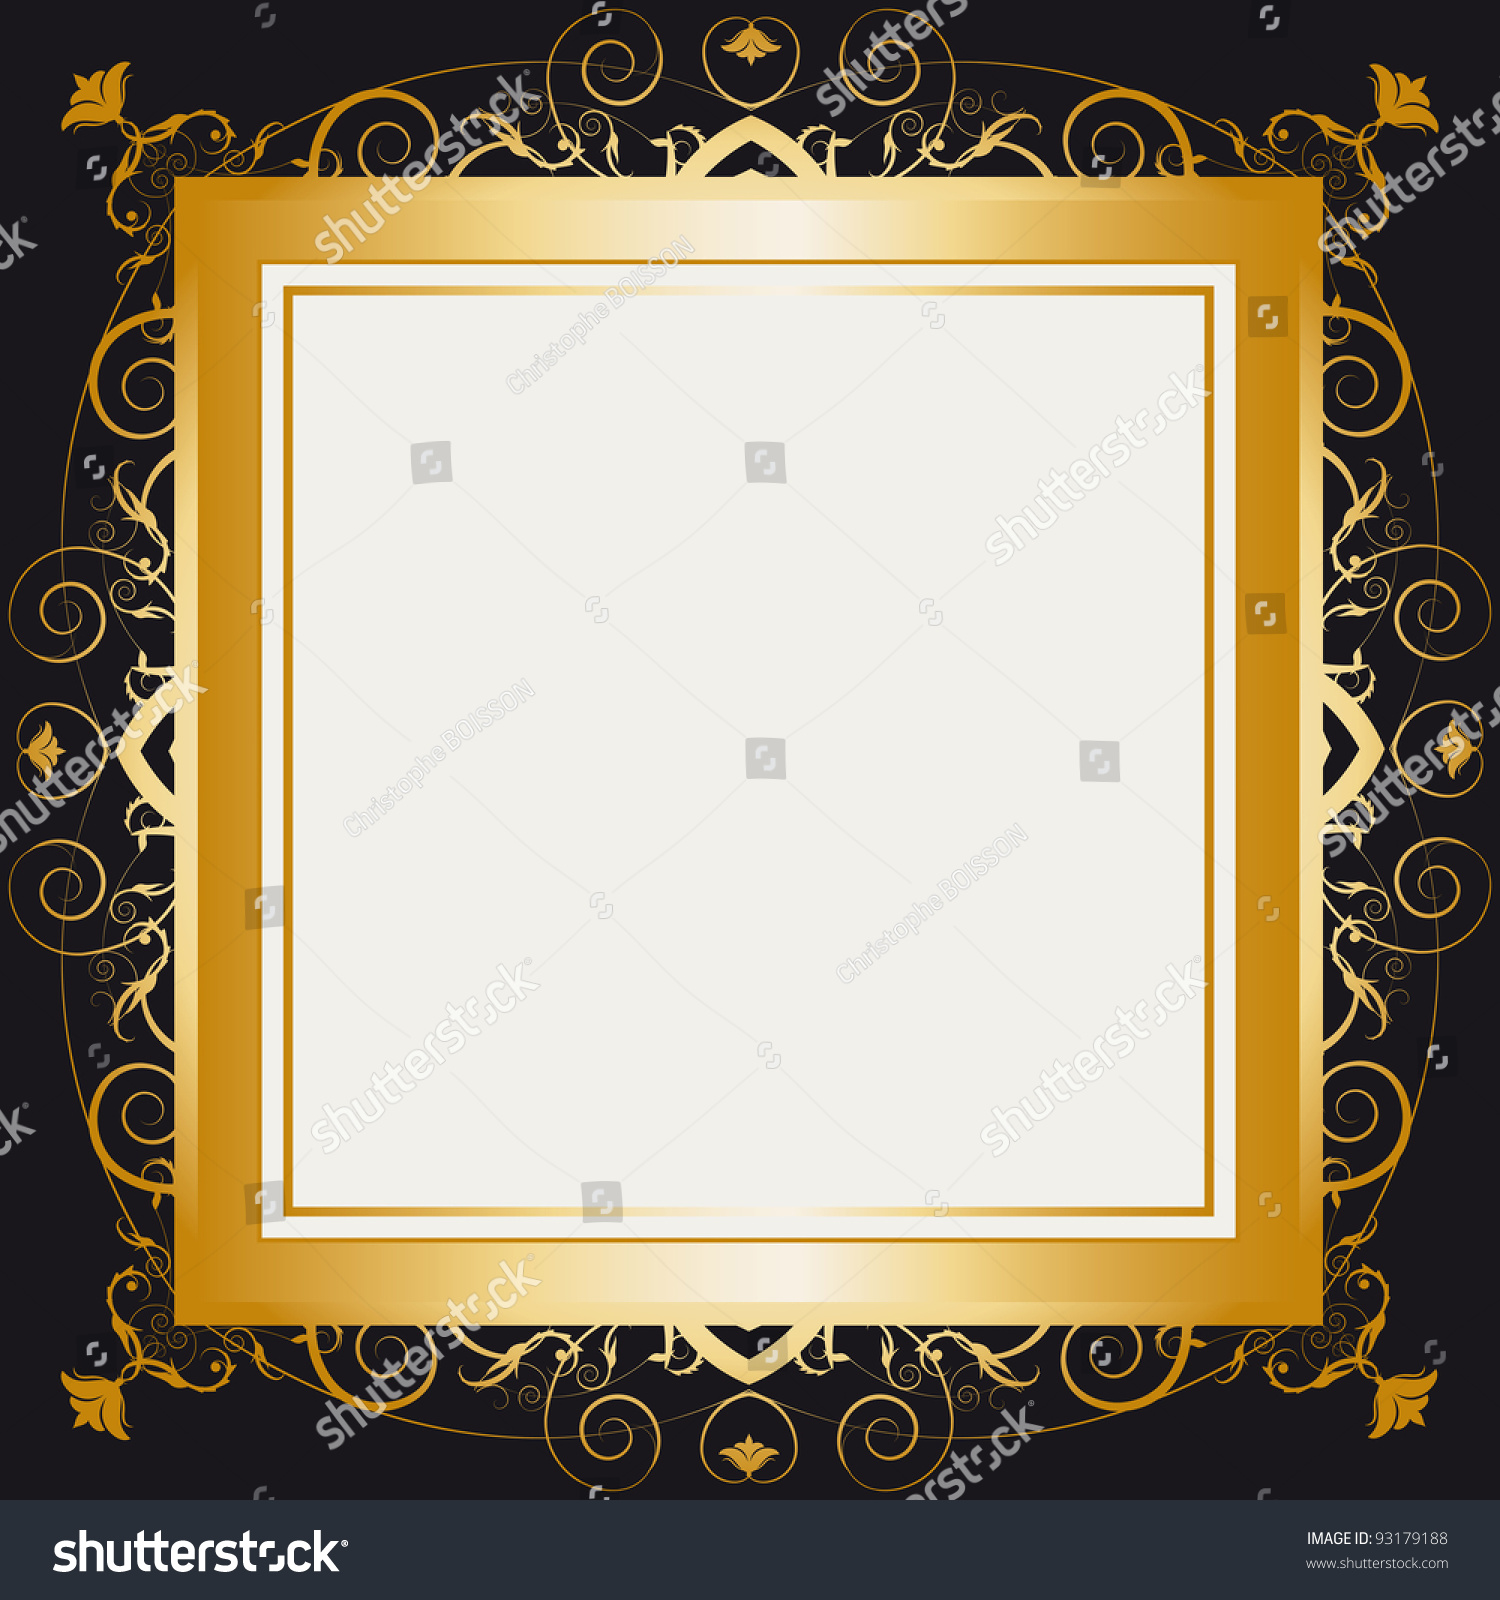 square gold frame a frame with a large space for your message